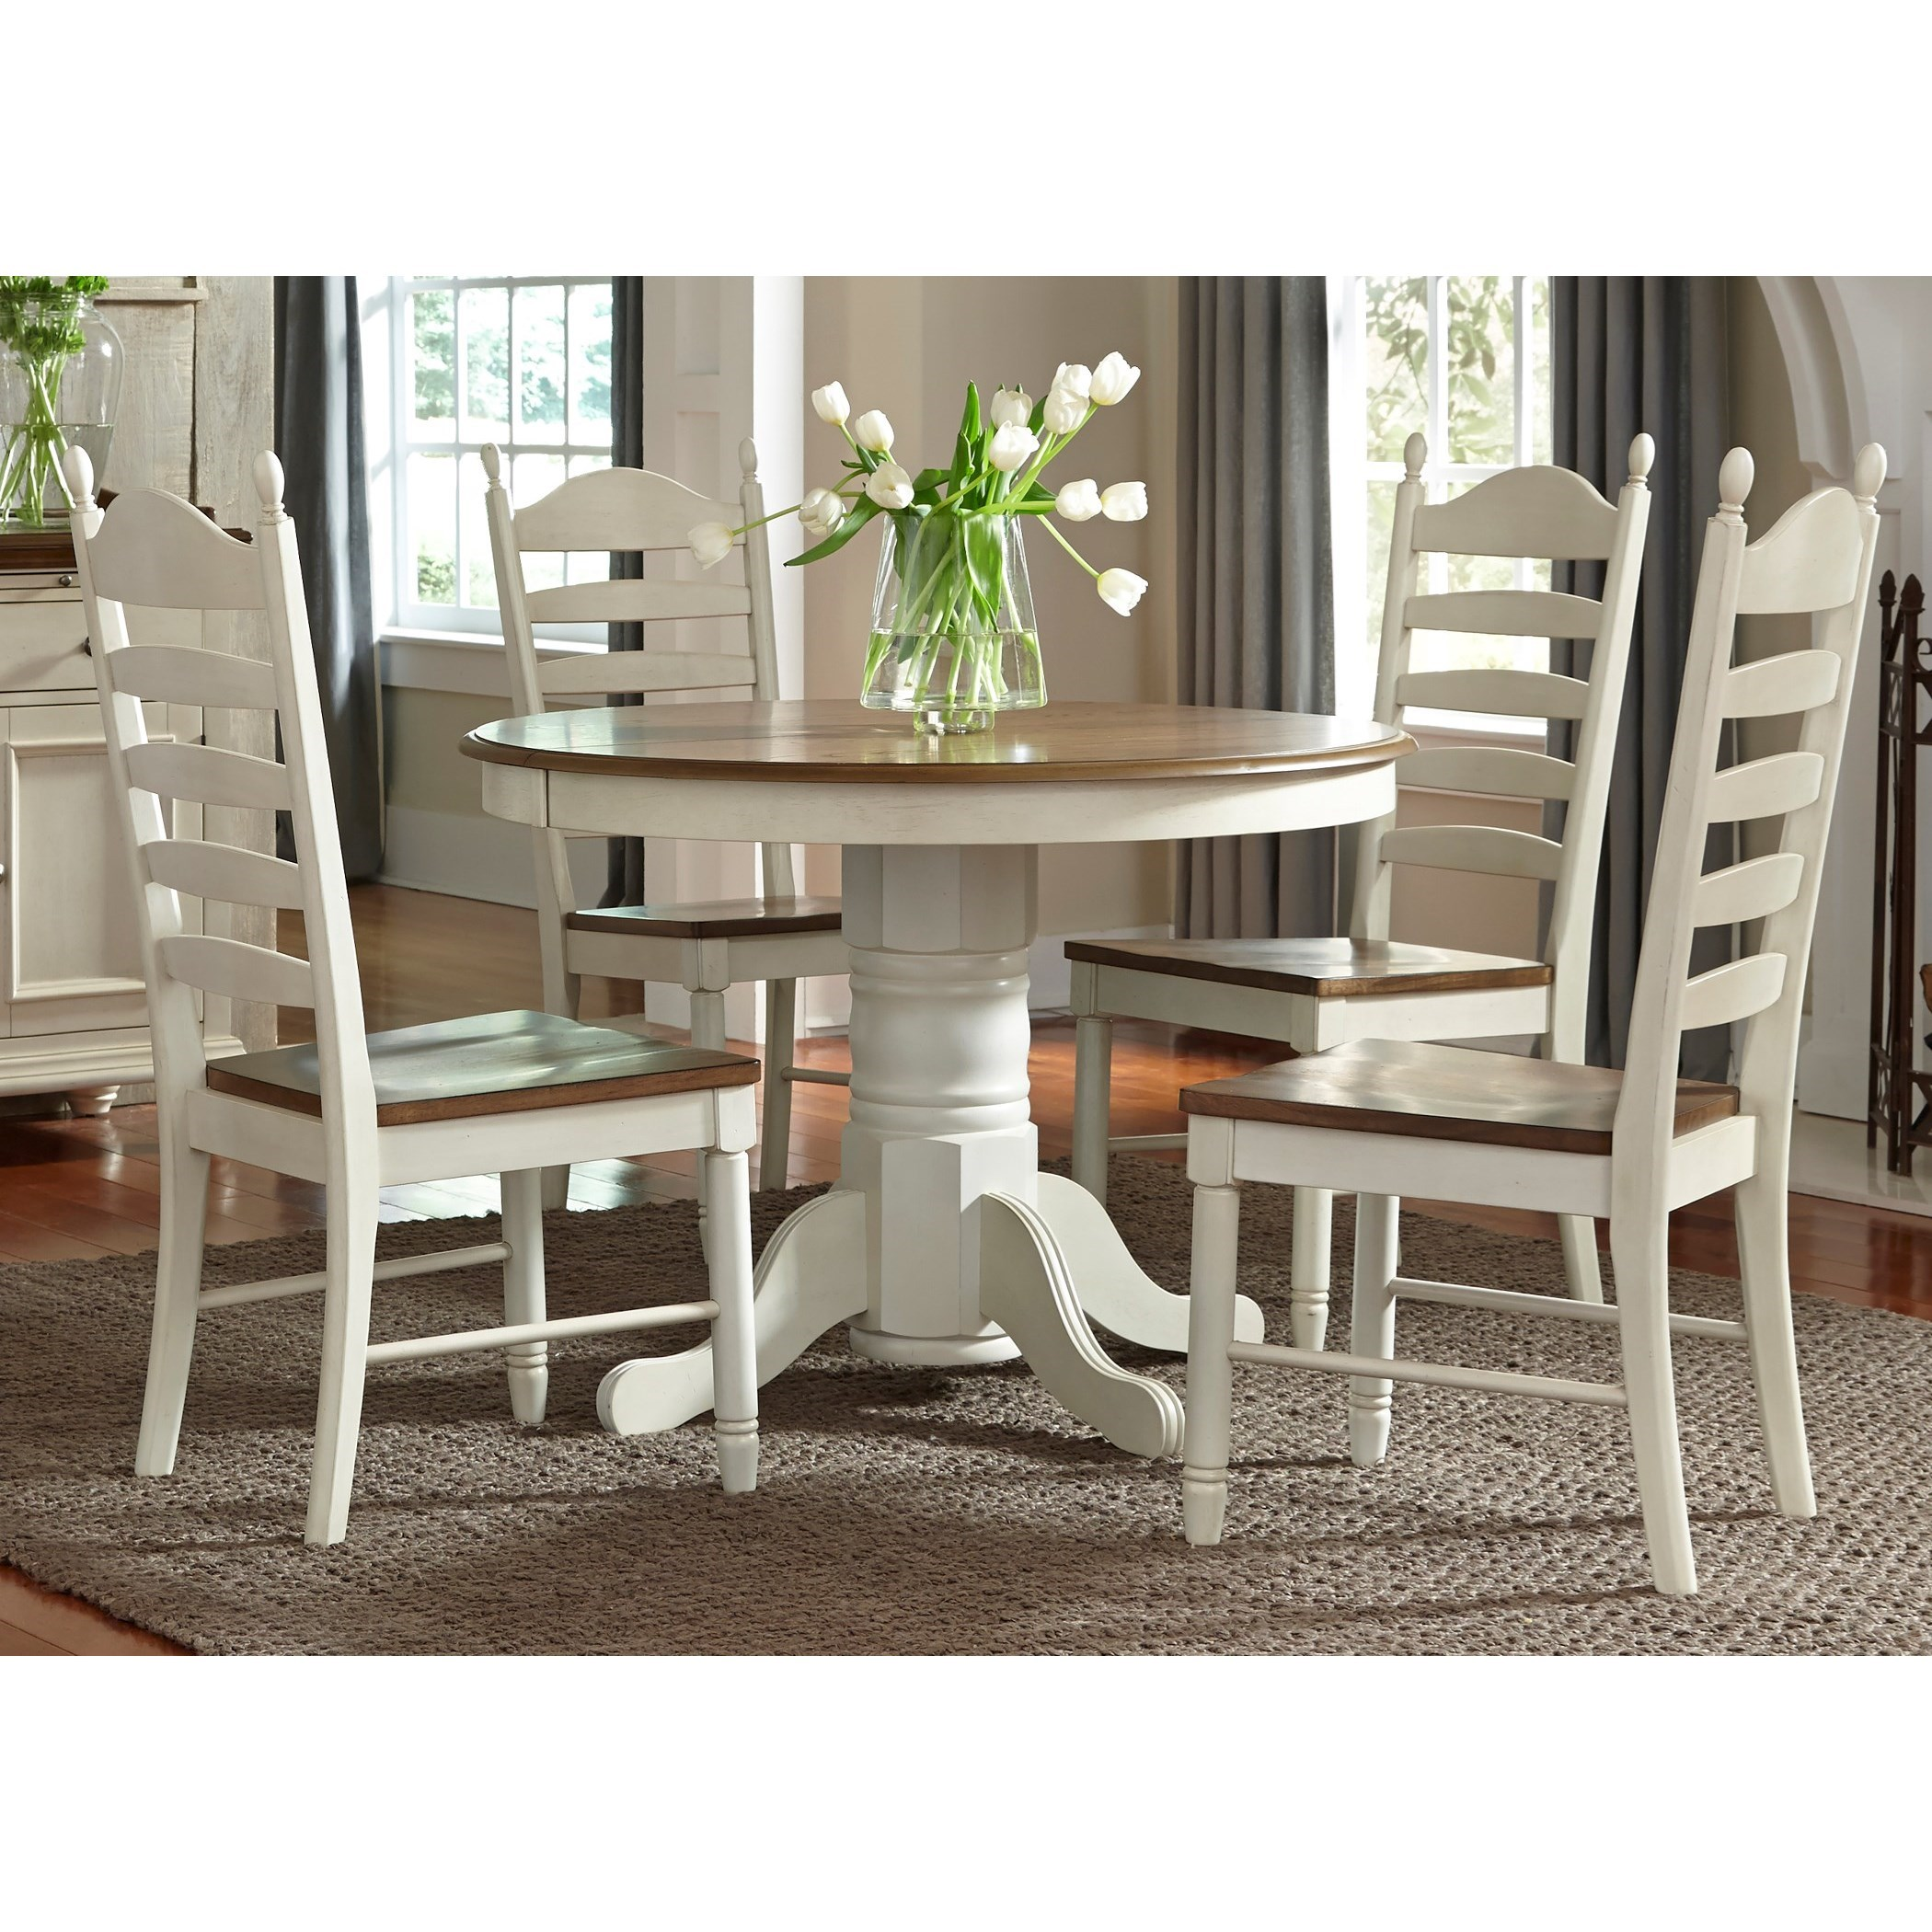 Springfield Dining 5 Piece Pedestal Table & Chair Set by Libby at Walker's Furniture